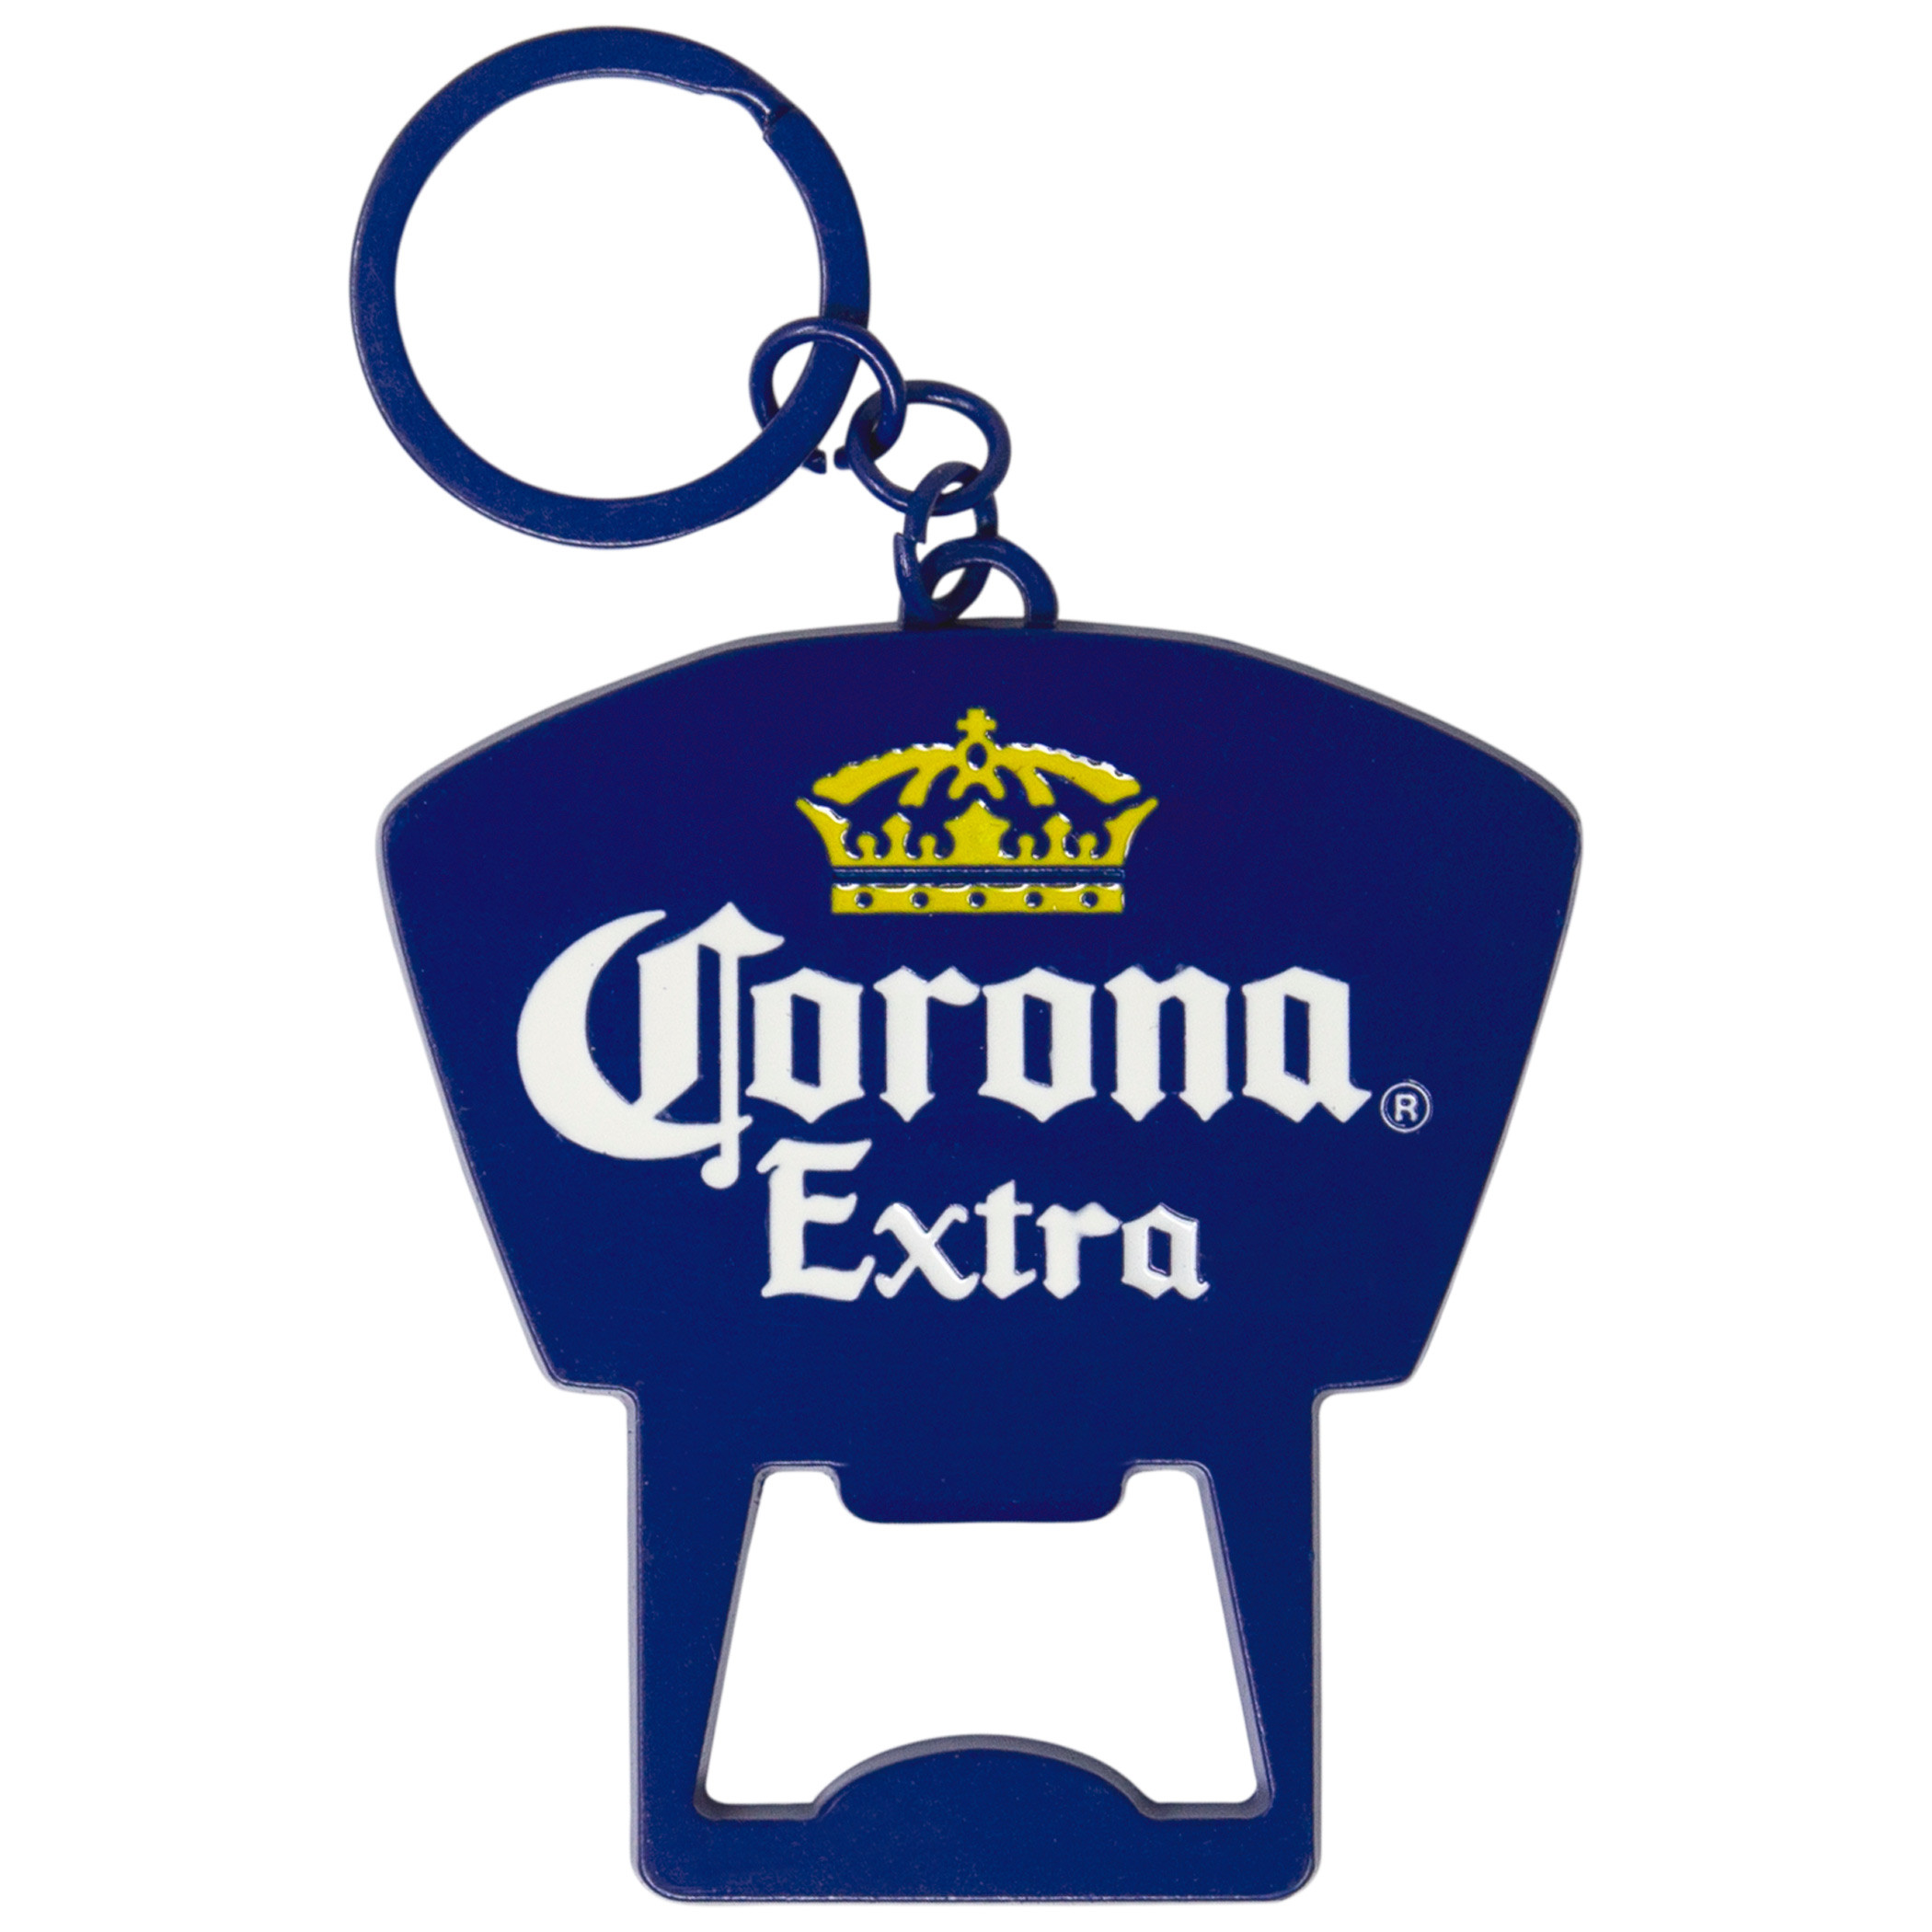 Corona Extra Beer Blue Keychain Bottle Opener